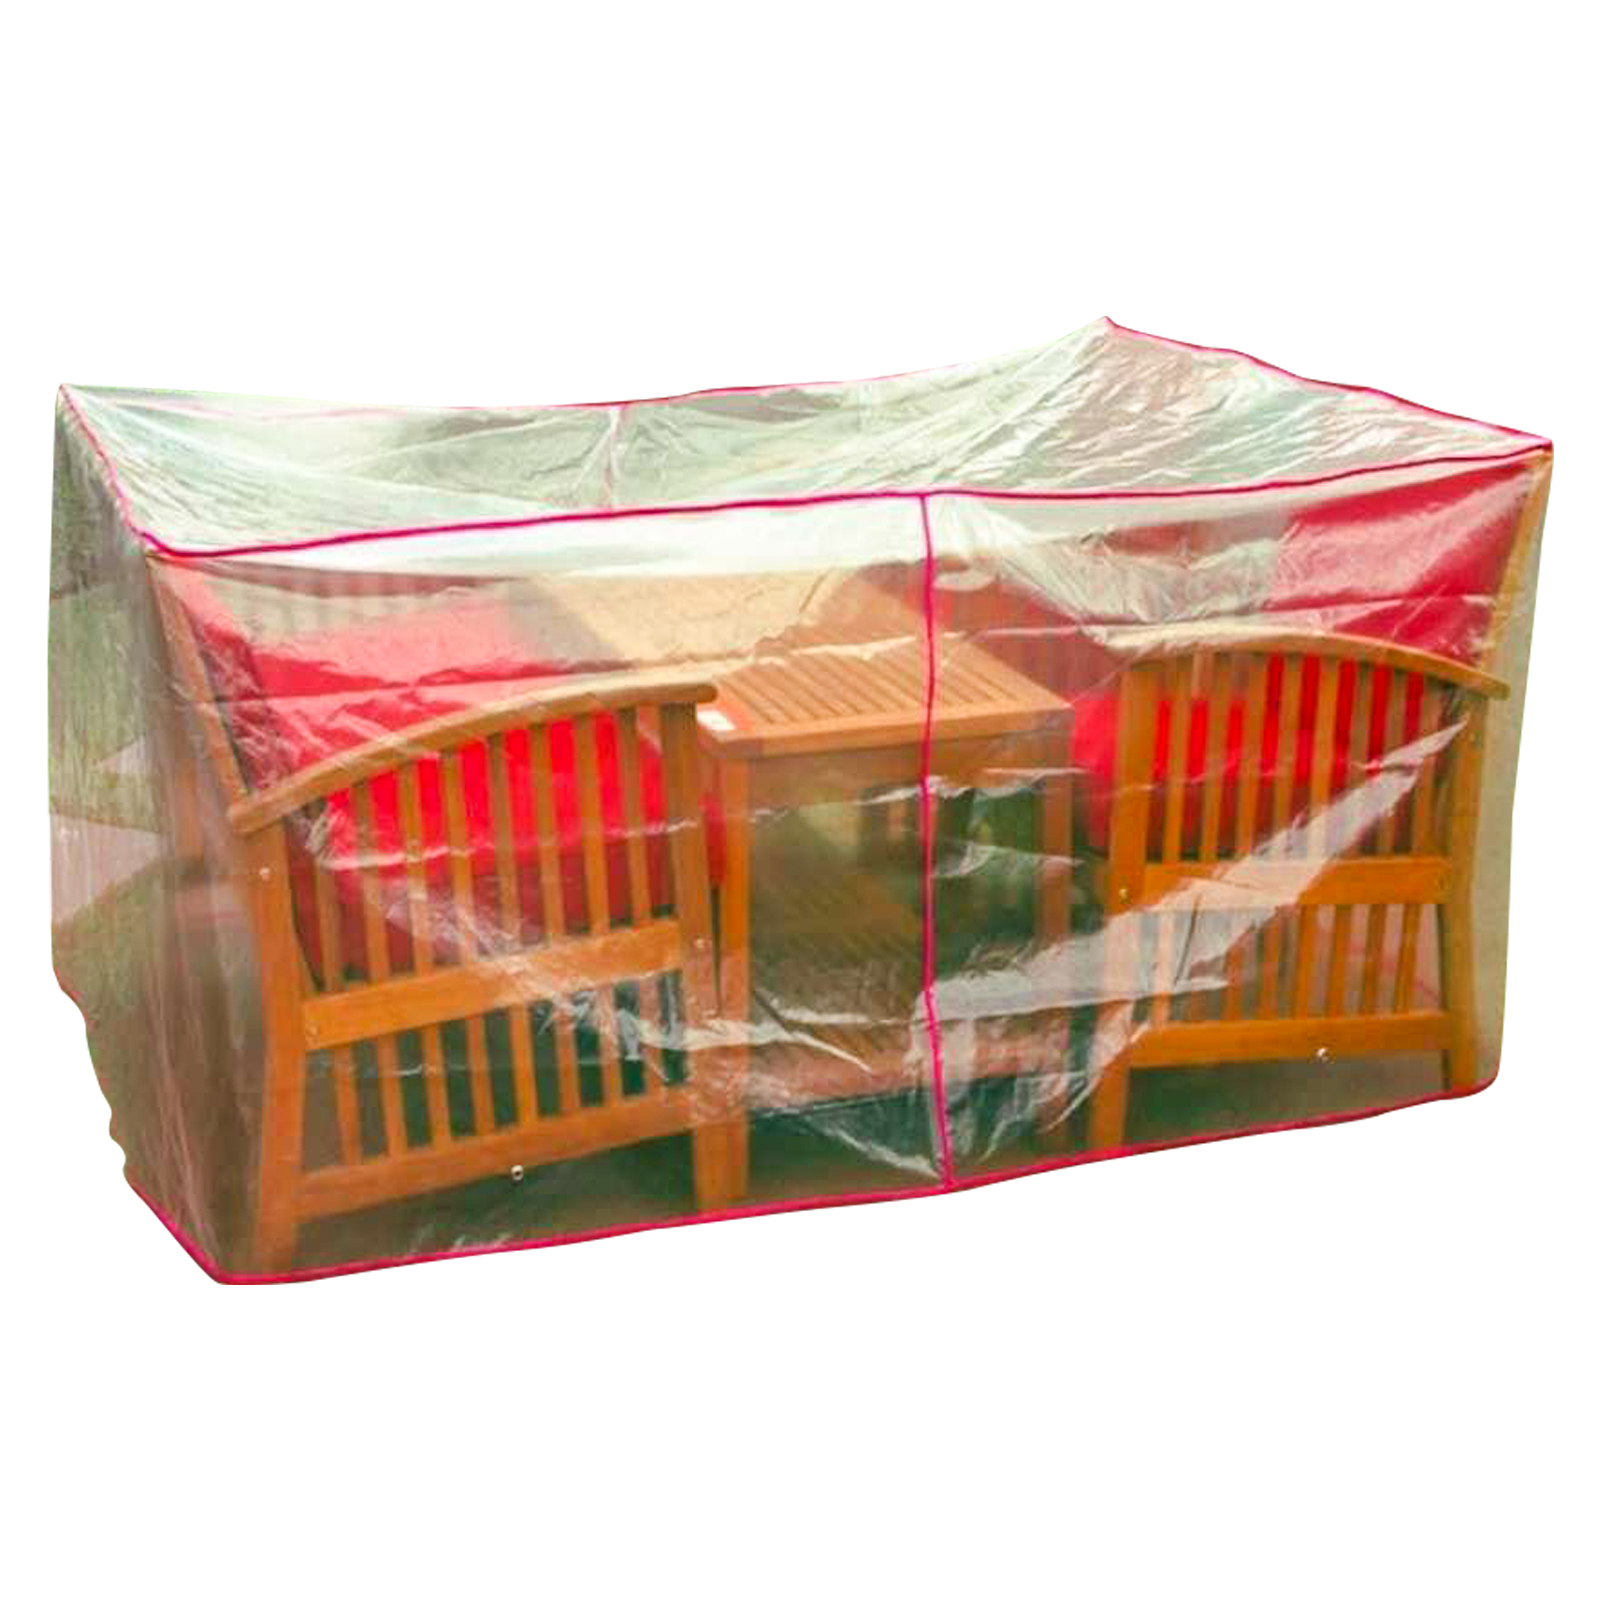 Garden Set 1table Cover, Waterproof Swing Chair cover Outdoor Garden Hammock Cover with 3 Year Warranty Various Sizes